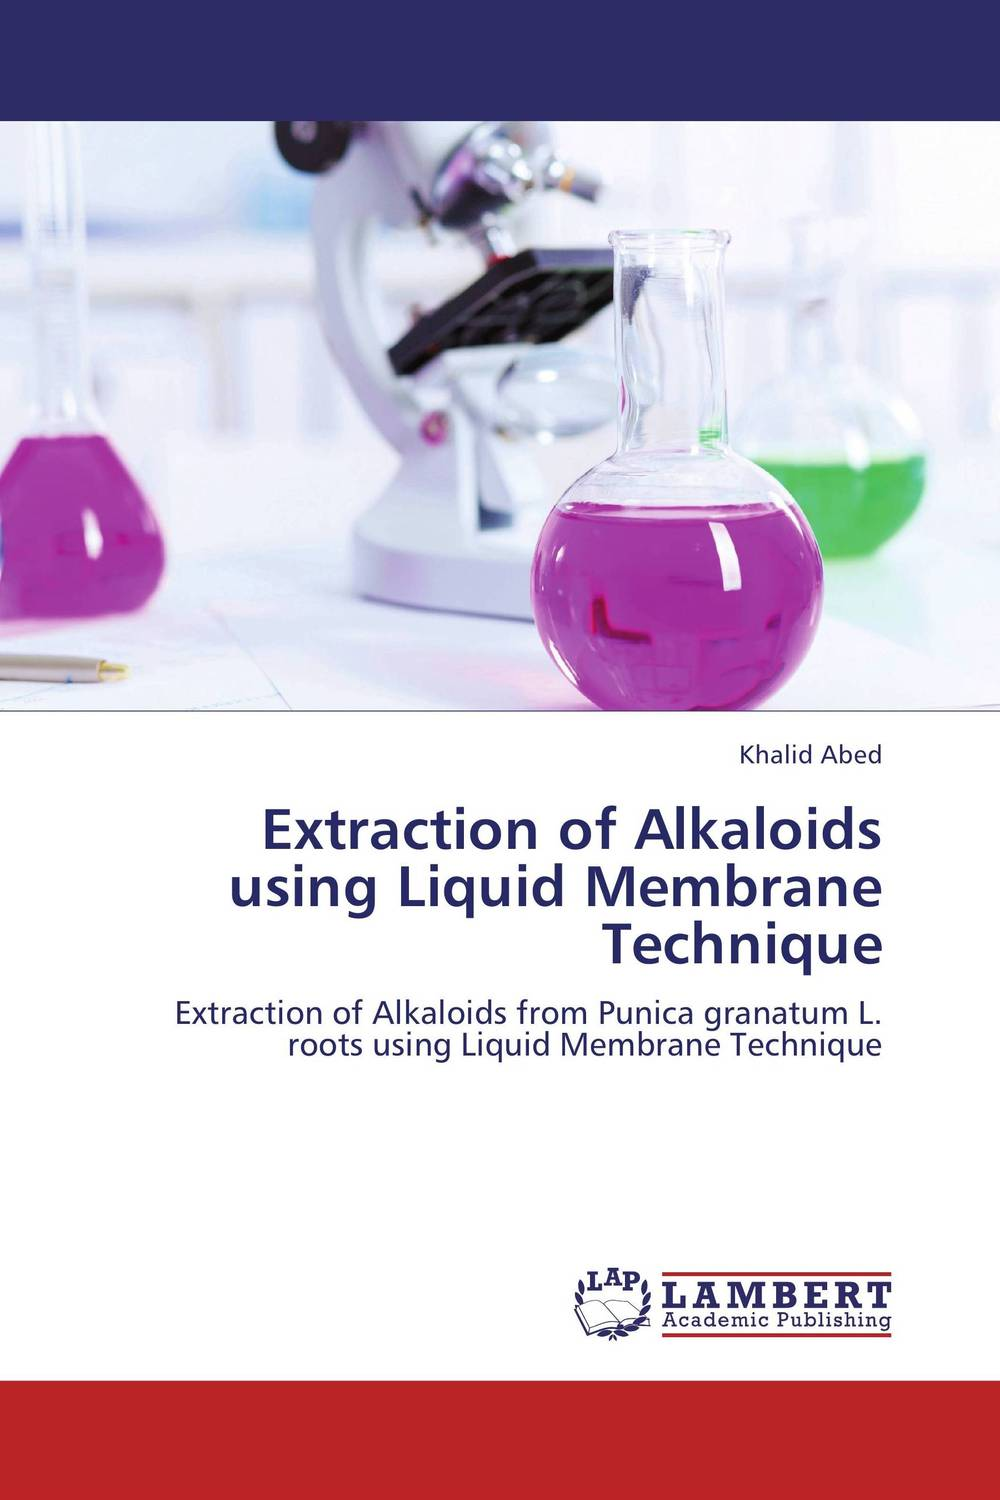 Extraction of Alkaloids using Liquid Membrane Technique soundgarden soundgarden king animal 2 lp 180 gr